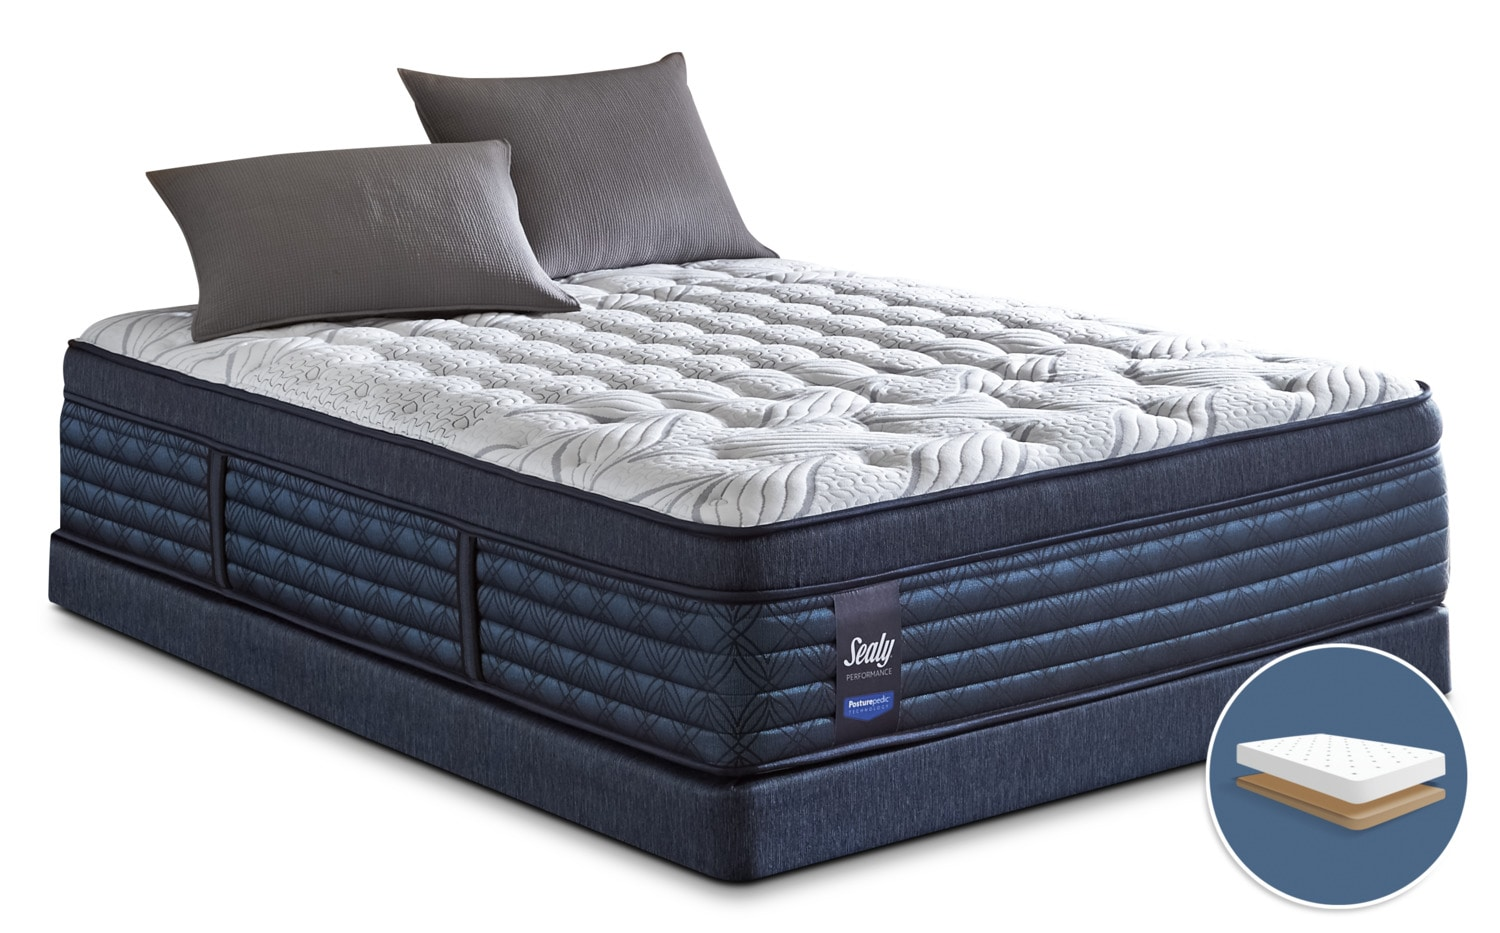 Sealy Posturepedic Hockenheim Euro-Top Firm Low-Profile Queen Mattress Set